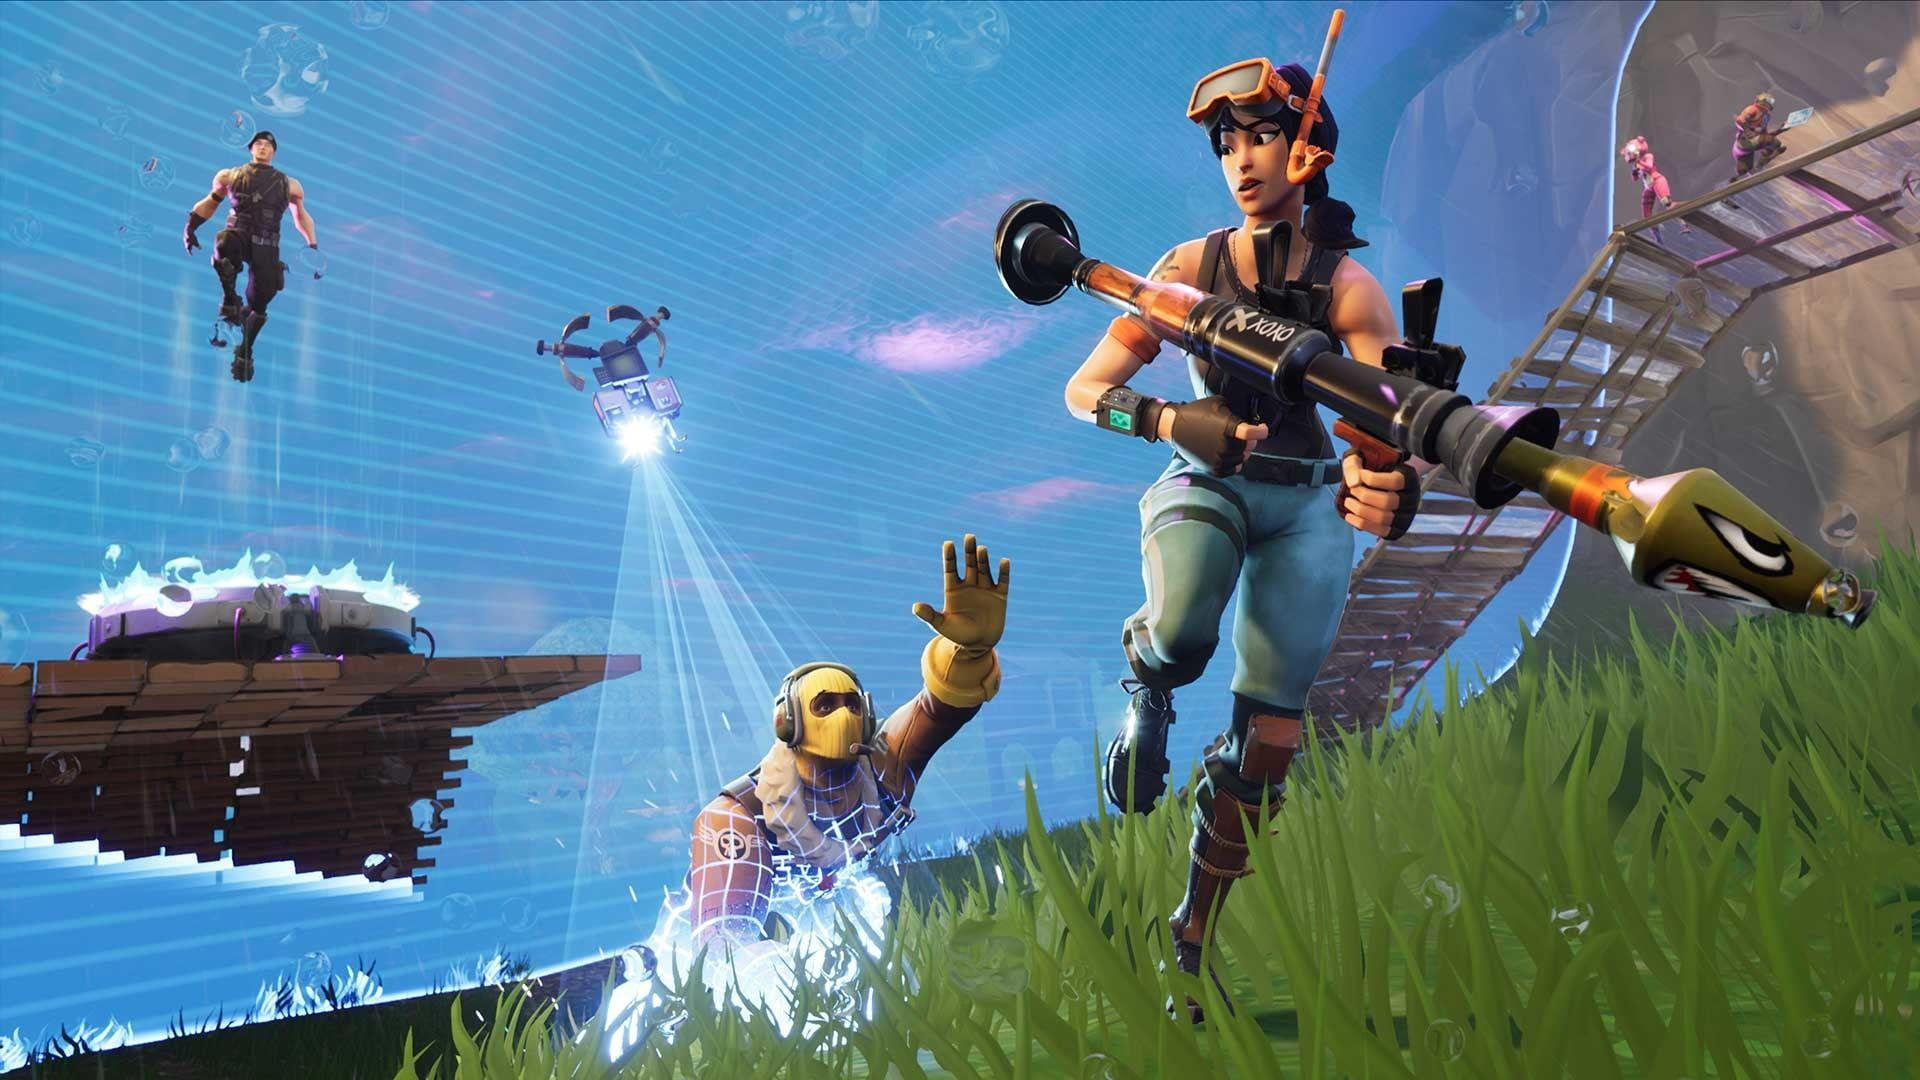 Fortnite Season 6: News, patch notes, skins, weapons and more